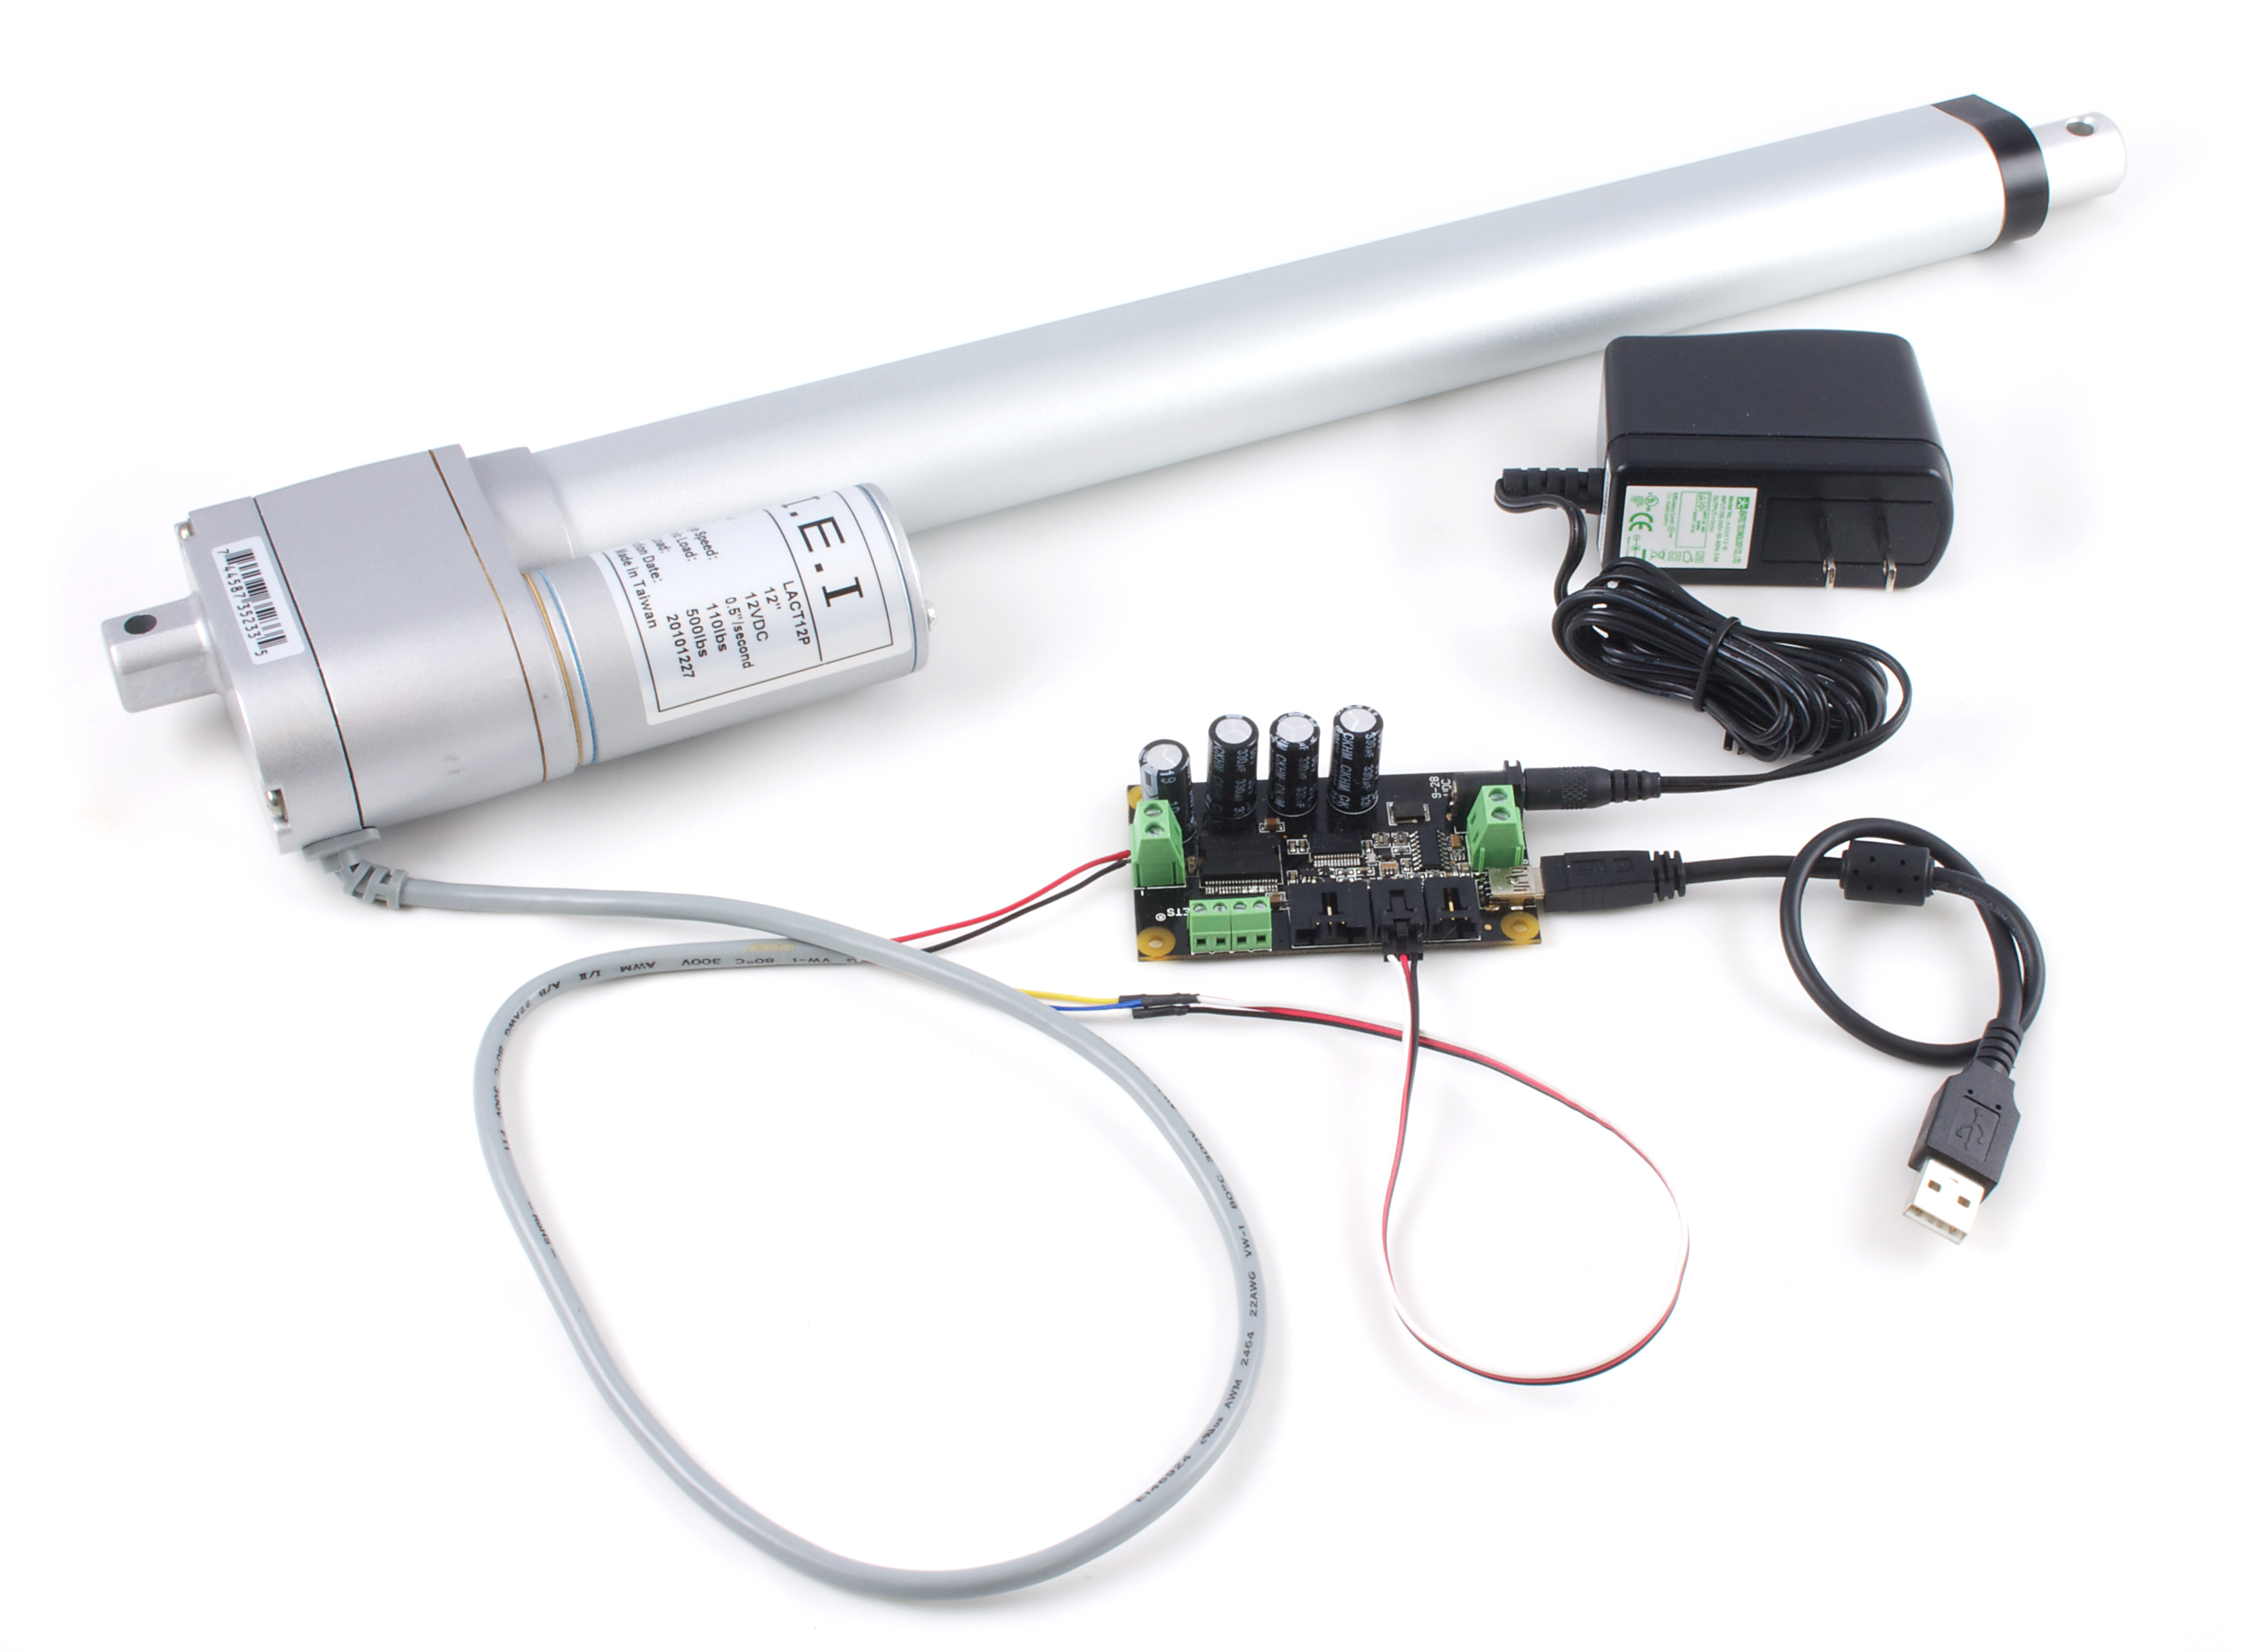 Phidgets Projects Linear Actuator Pid Control Slide Wiring Diagram A Is Motor That Has Been Geared To Extend And Contract An Arm Rather Than Rotate Shaft Many Applications Use Actuators